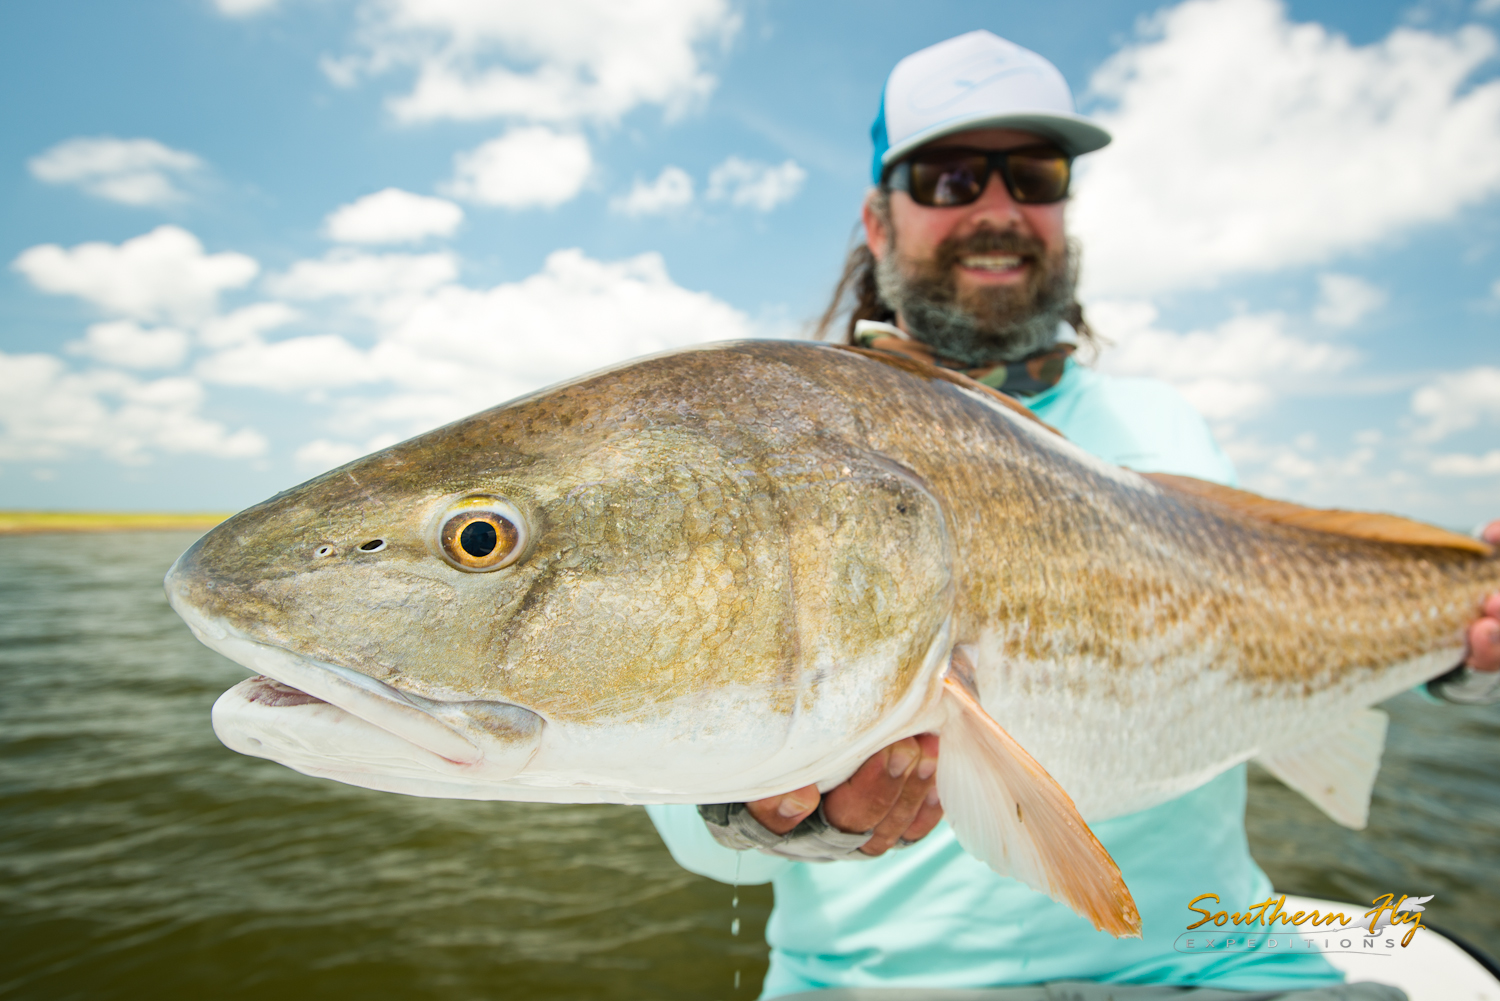 Best Fly Fishing Weekend Trip New Orleans with Southern Fly Expeditions